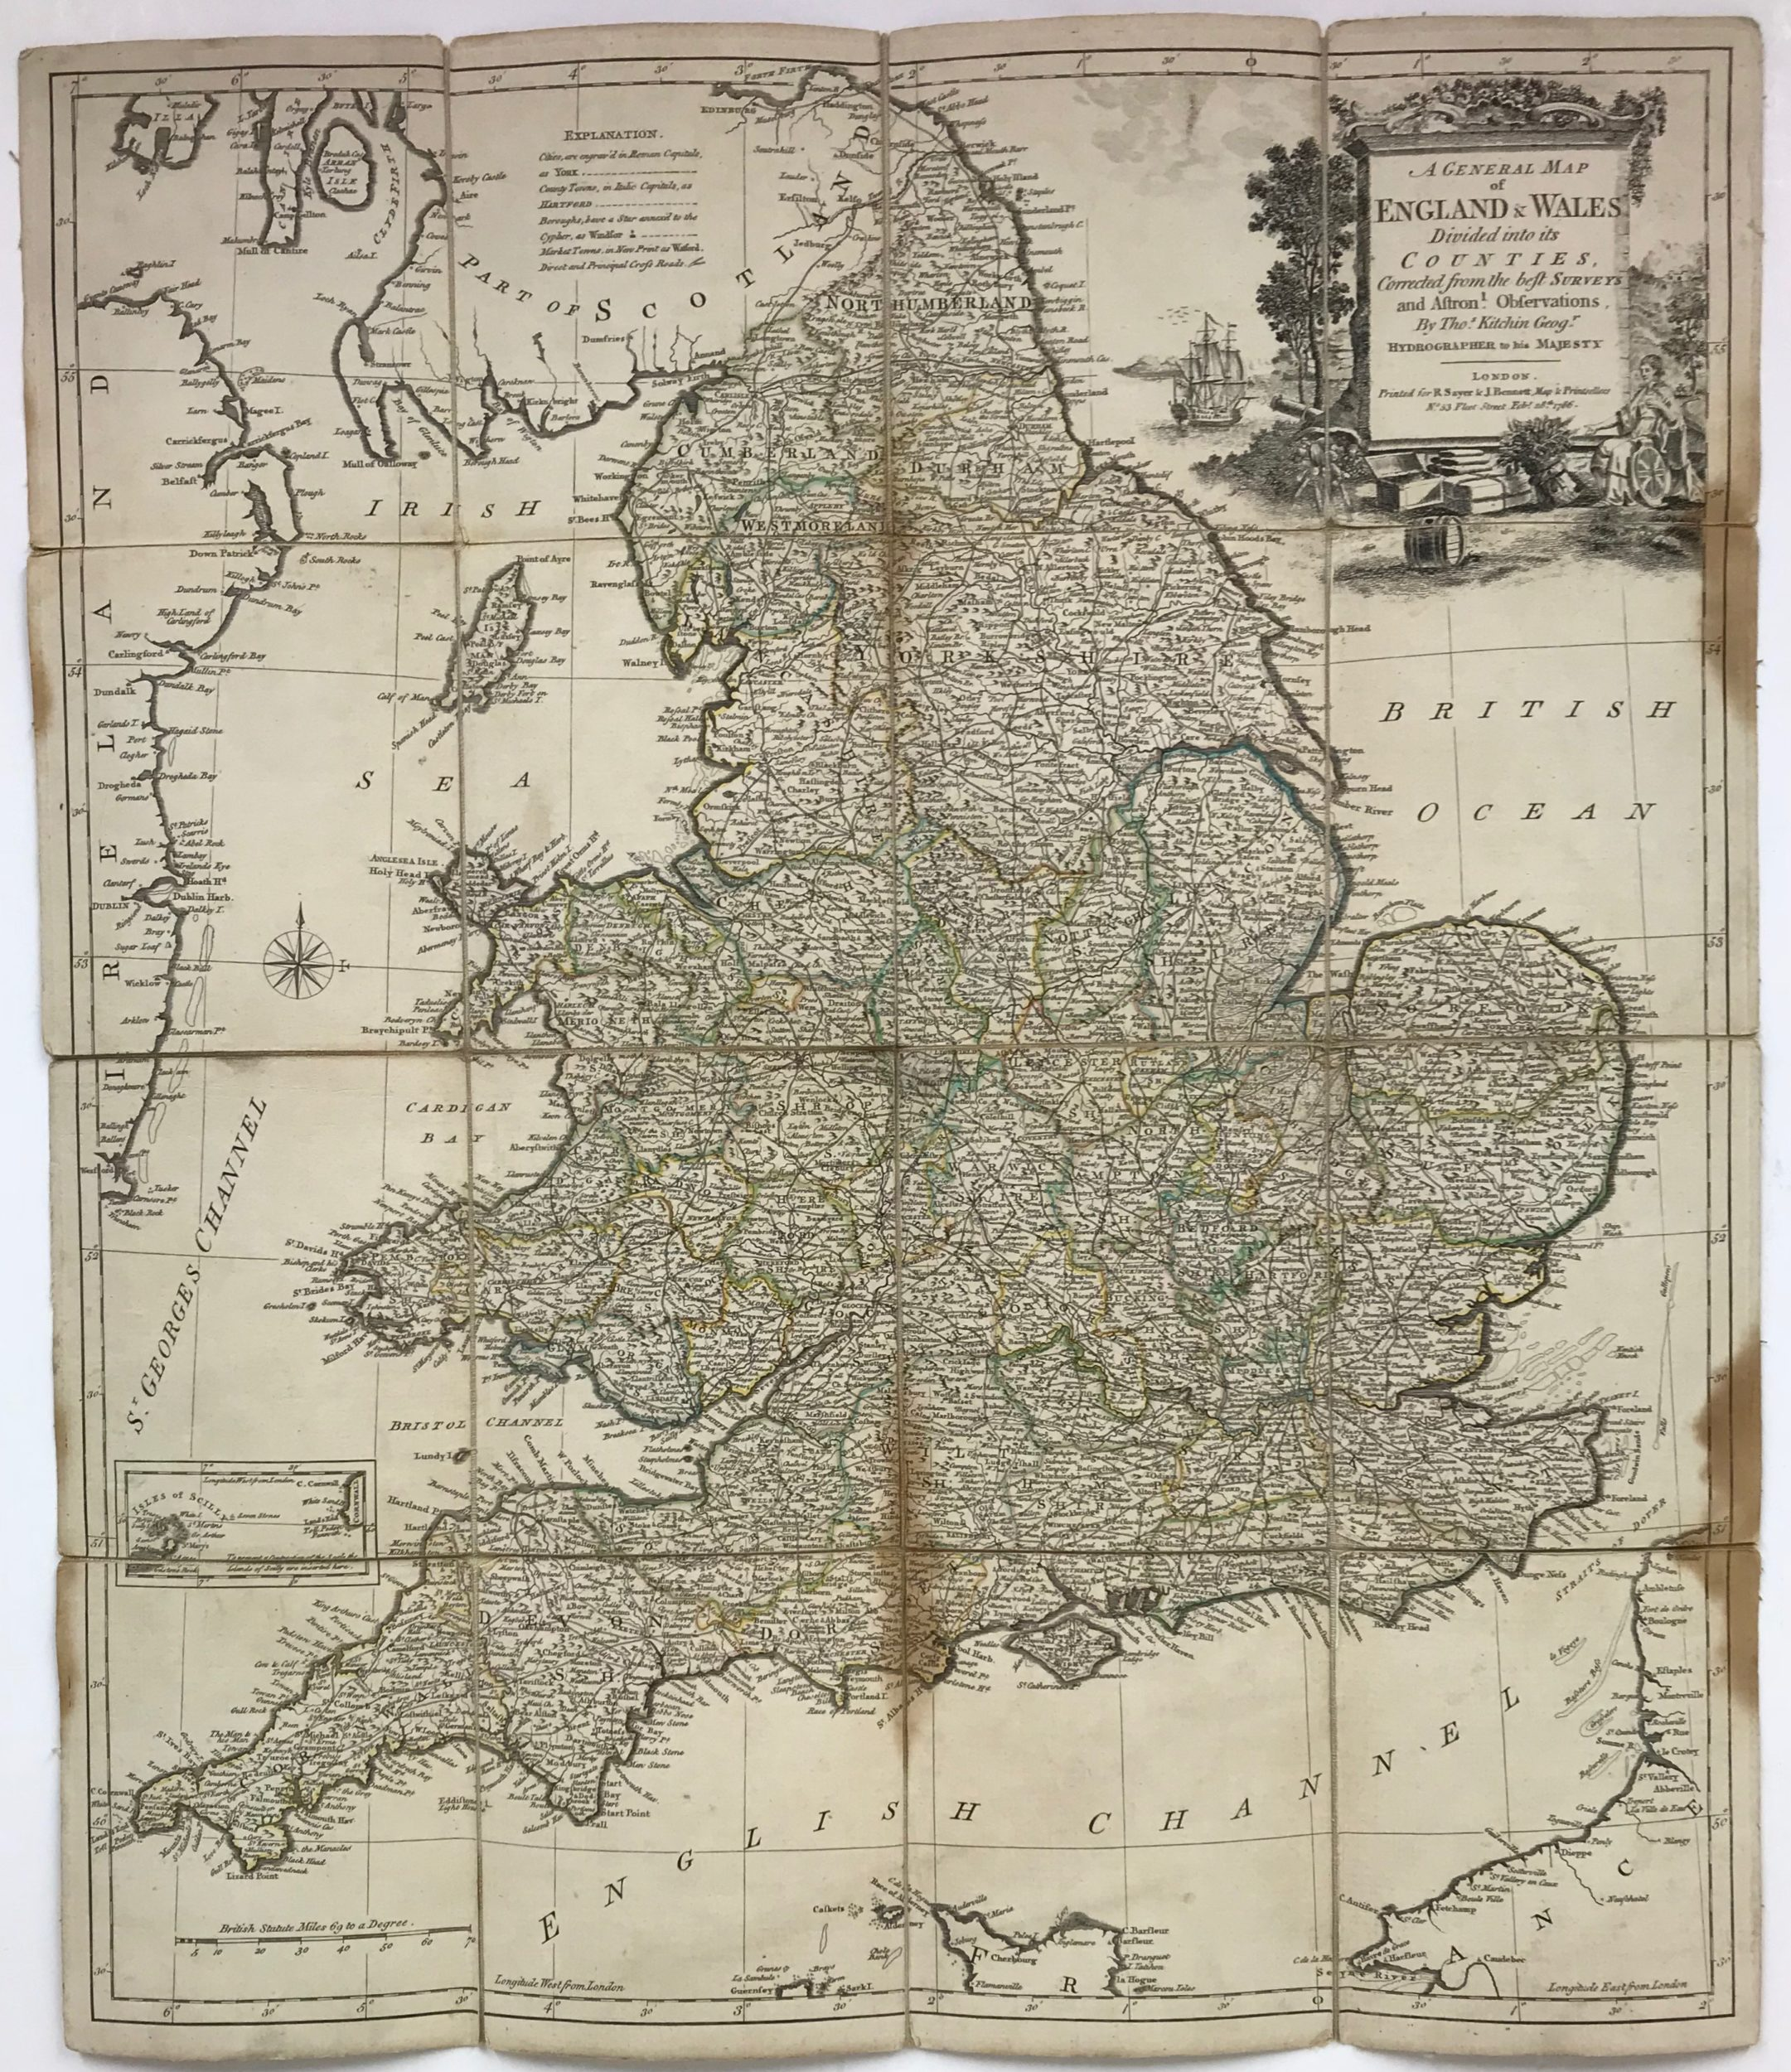 Map Of England And Wales.England Wales Antique Map By Thomas Kitchin 1786 Frontispiece